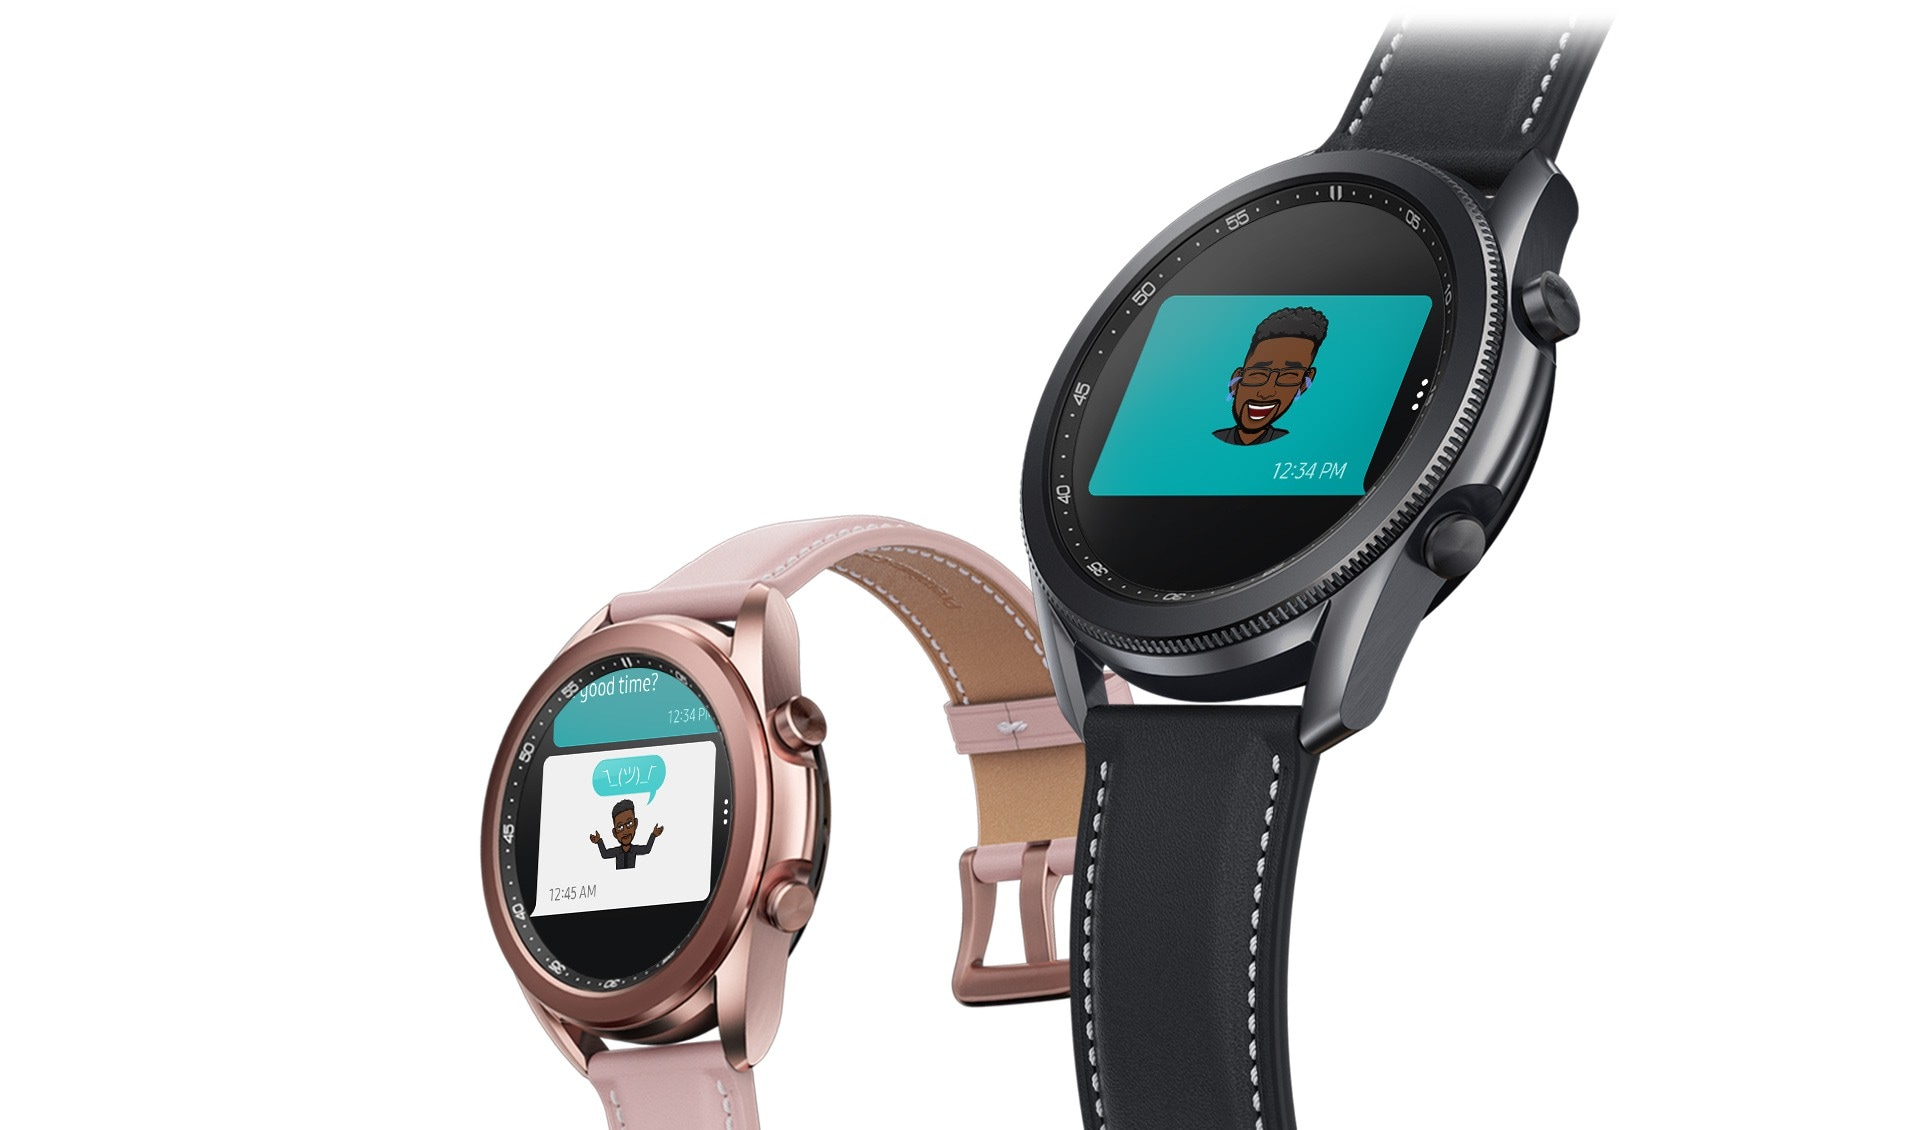 Angled view of 45mm Galaxy Watch3 in Mystic Black and 41mm Galaxy Watch3 in Mystic Bronze. The two show the sending and receiving of Bitmoji emojis through the Message app.